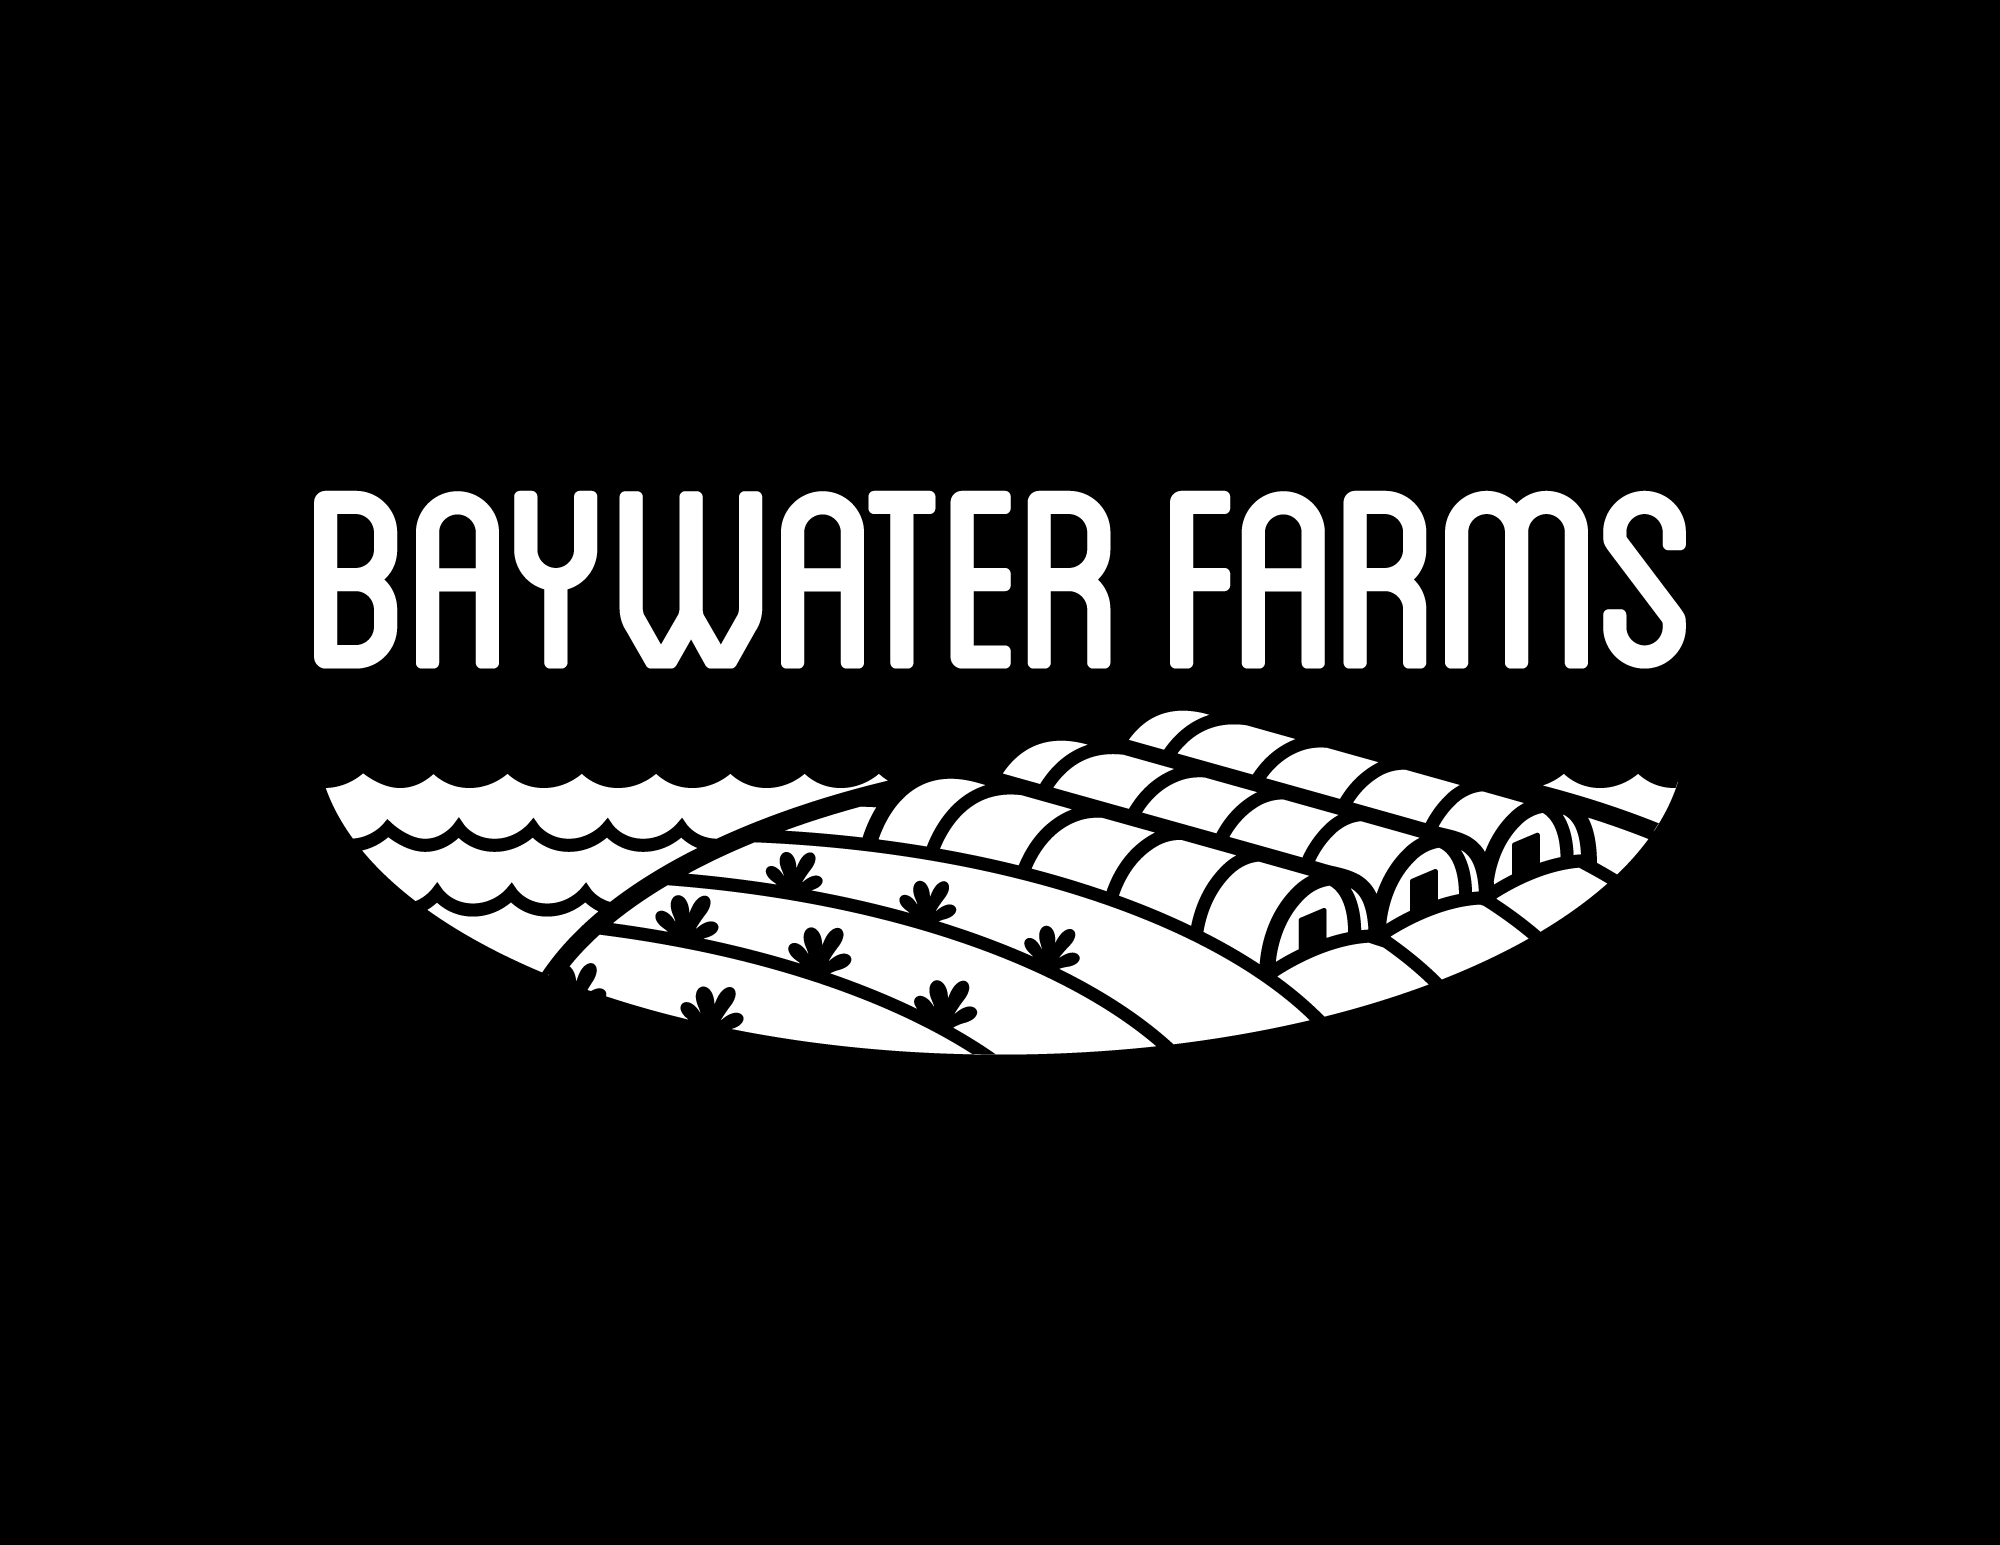 BaywaterFarms_Logo_V1_B&W-Rounded-BlackBKG.png